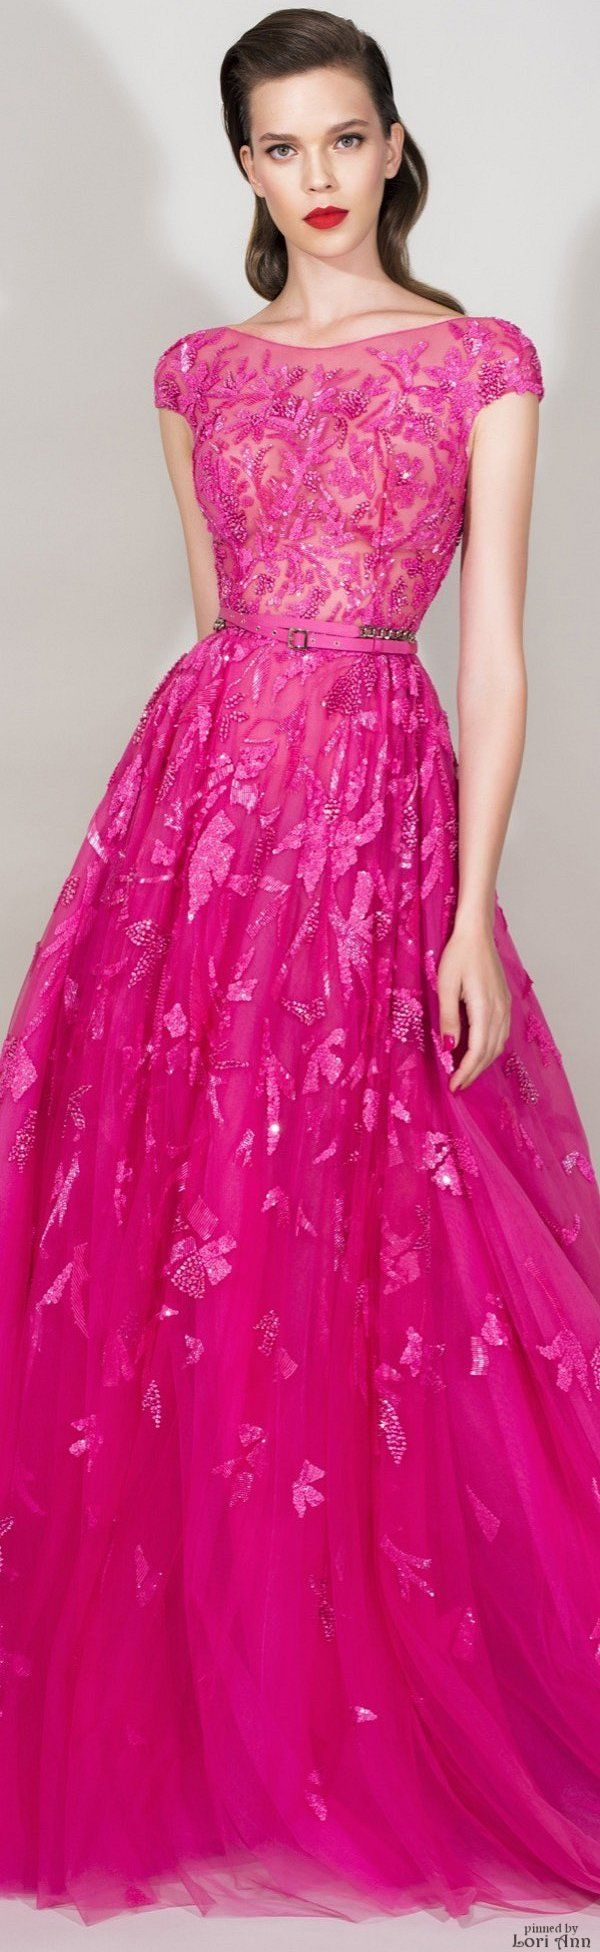 best pink perfection images on pinterest